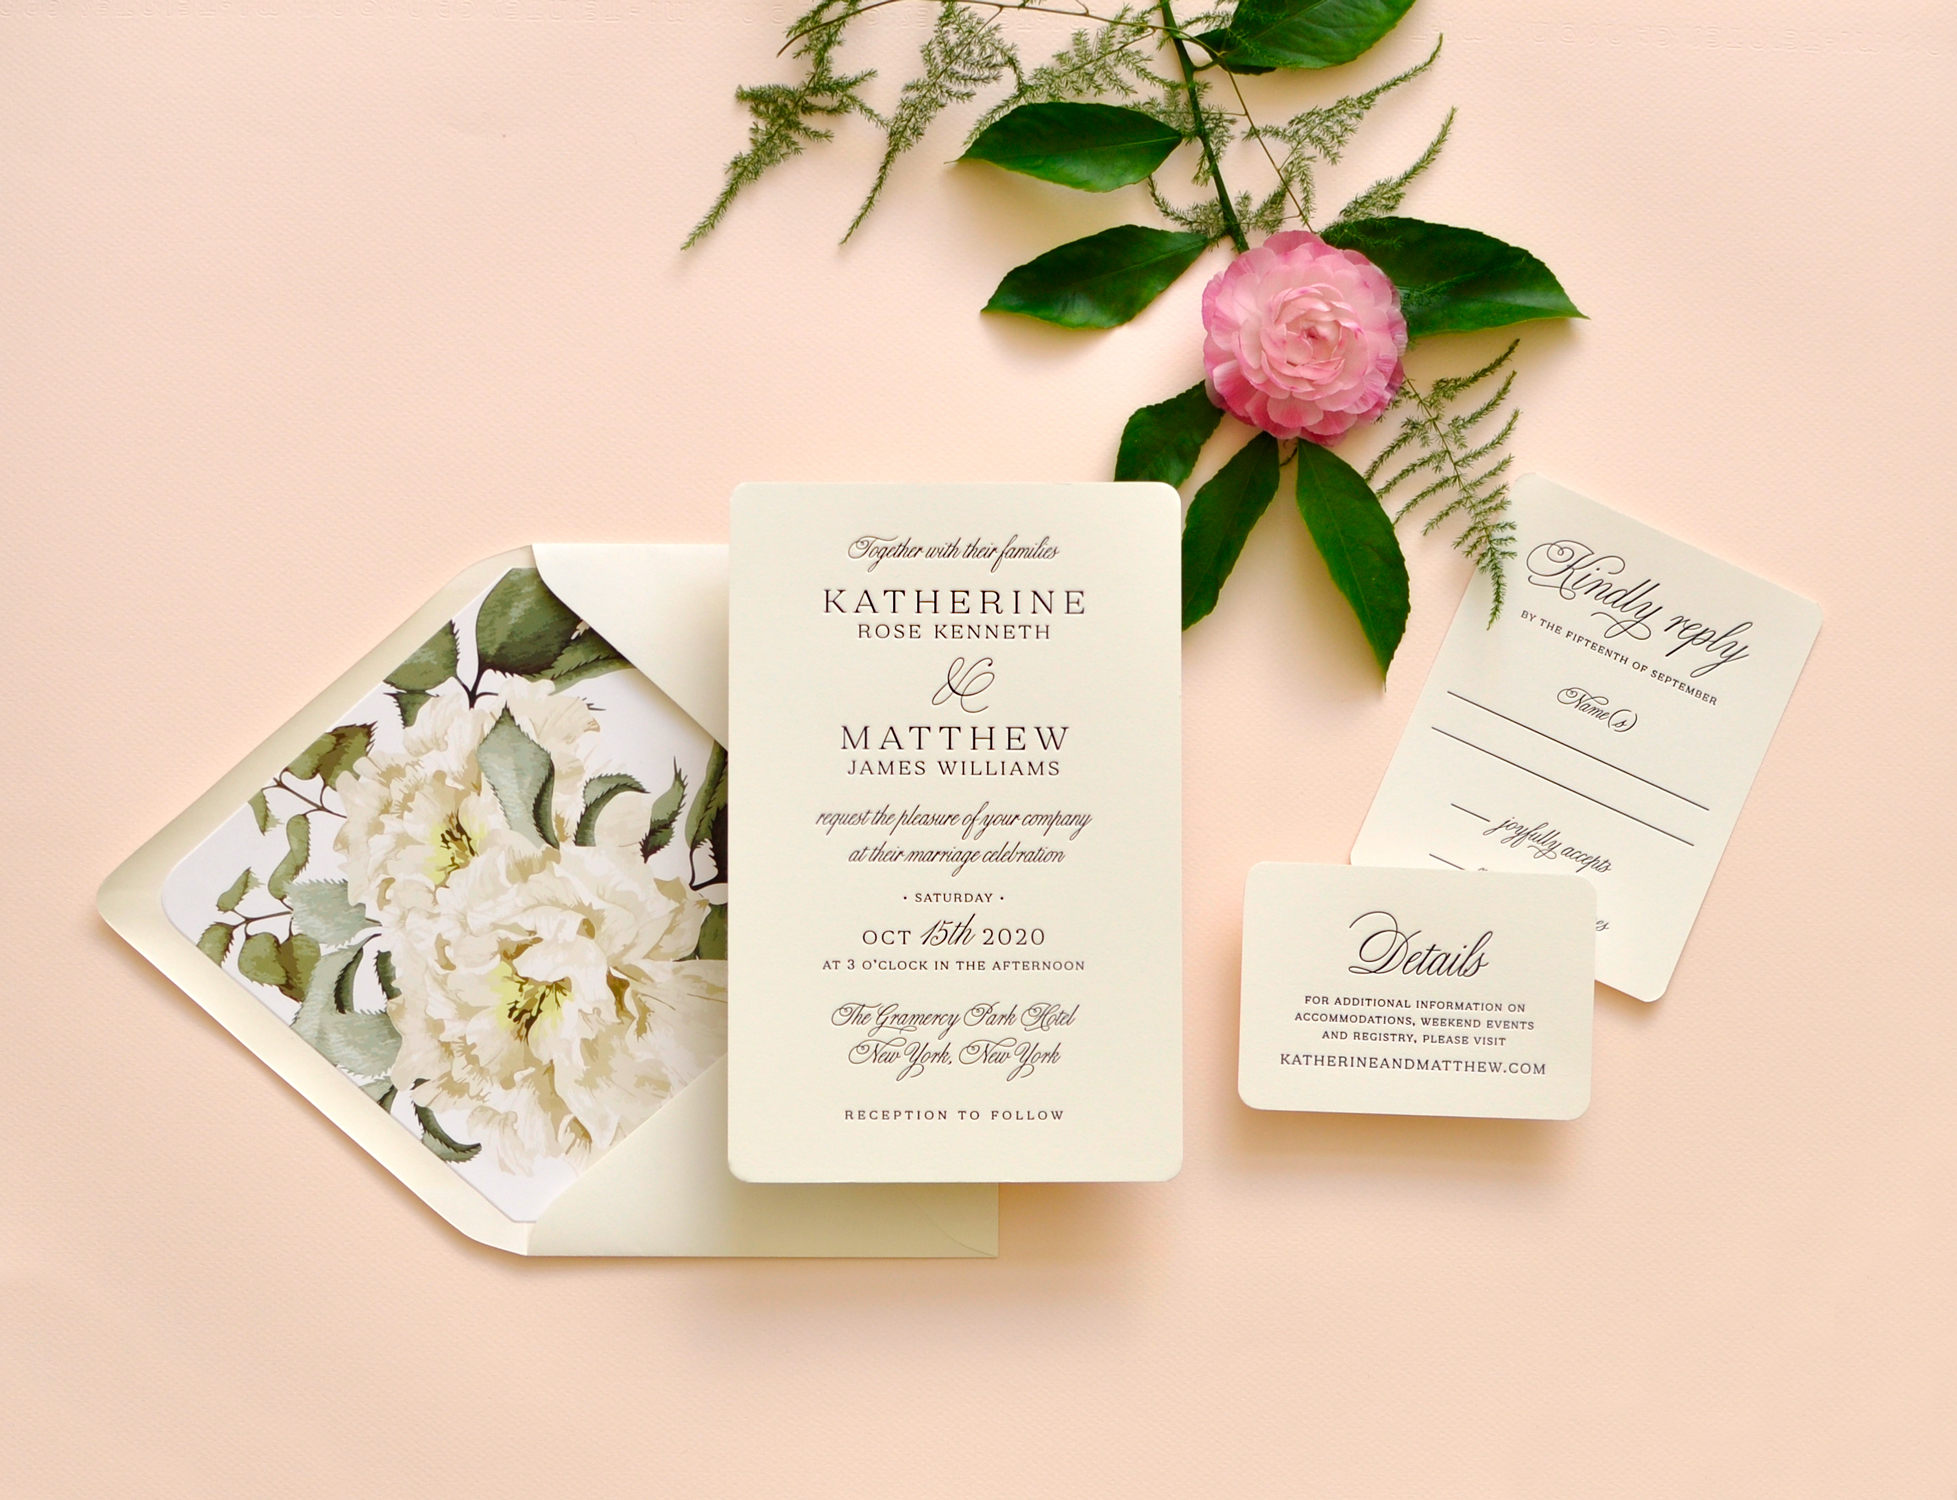 1-color letterpress wedding invitation is classic and contemporary in its beautiful text setting.